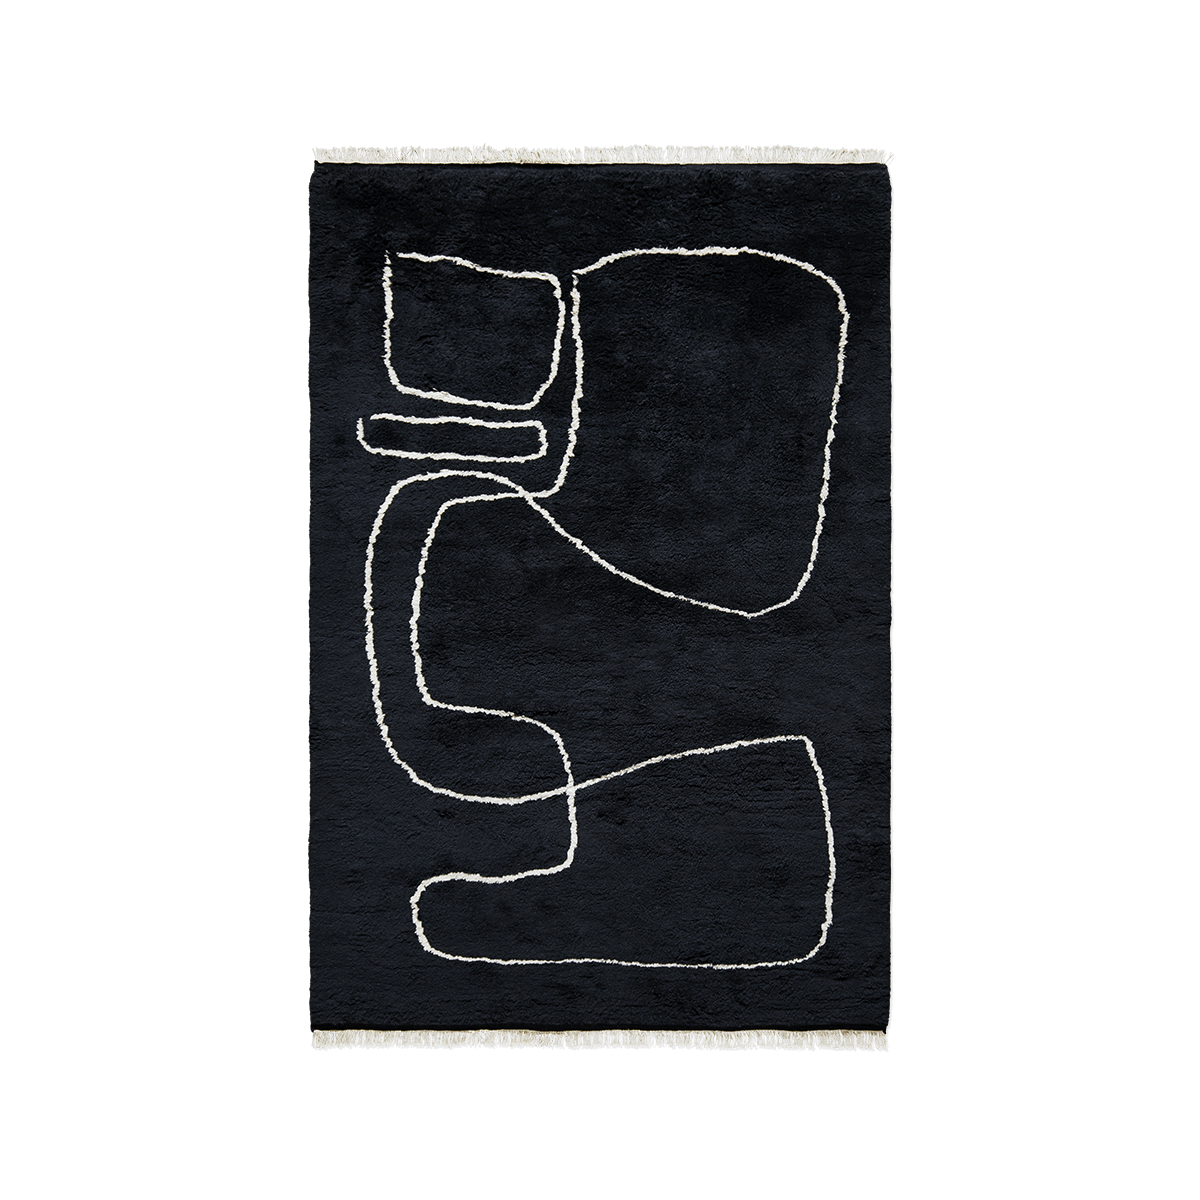 Product image of the shaggy rug Connection in Black. On it is a white line creating an organic pattern.